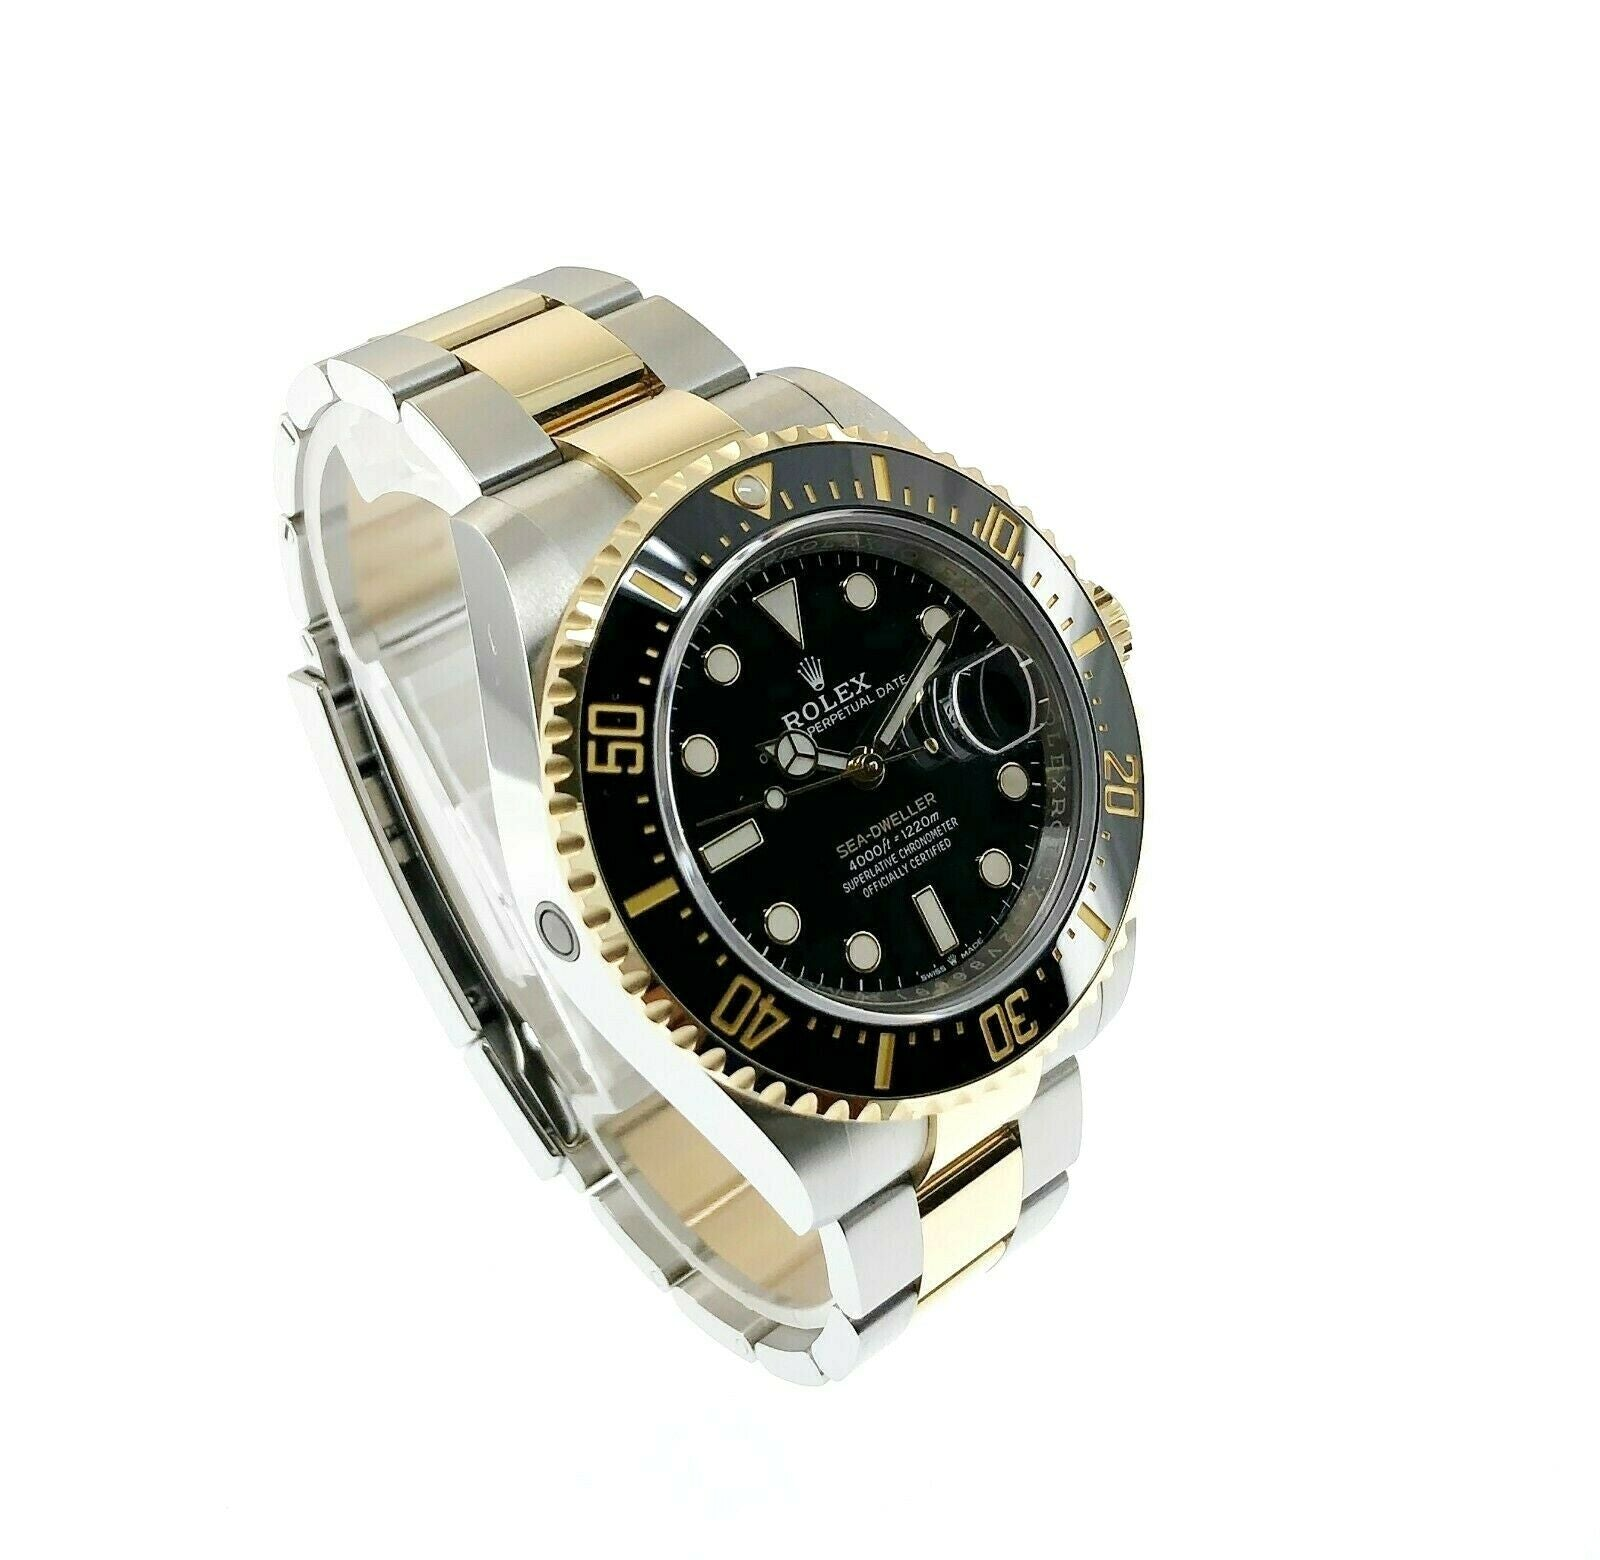 Rolex Sea Dweller 43mm Ceramic 18K Gold Stainless Watch Ref 126603 Box Card 2019